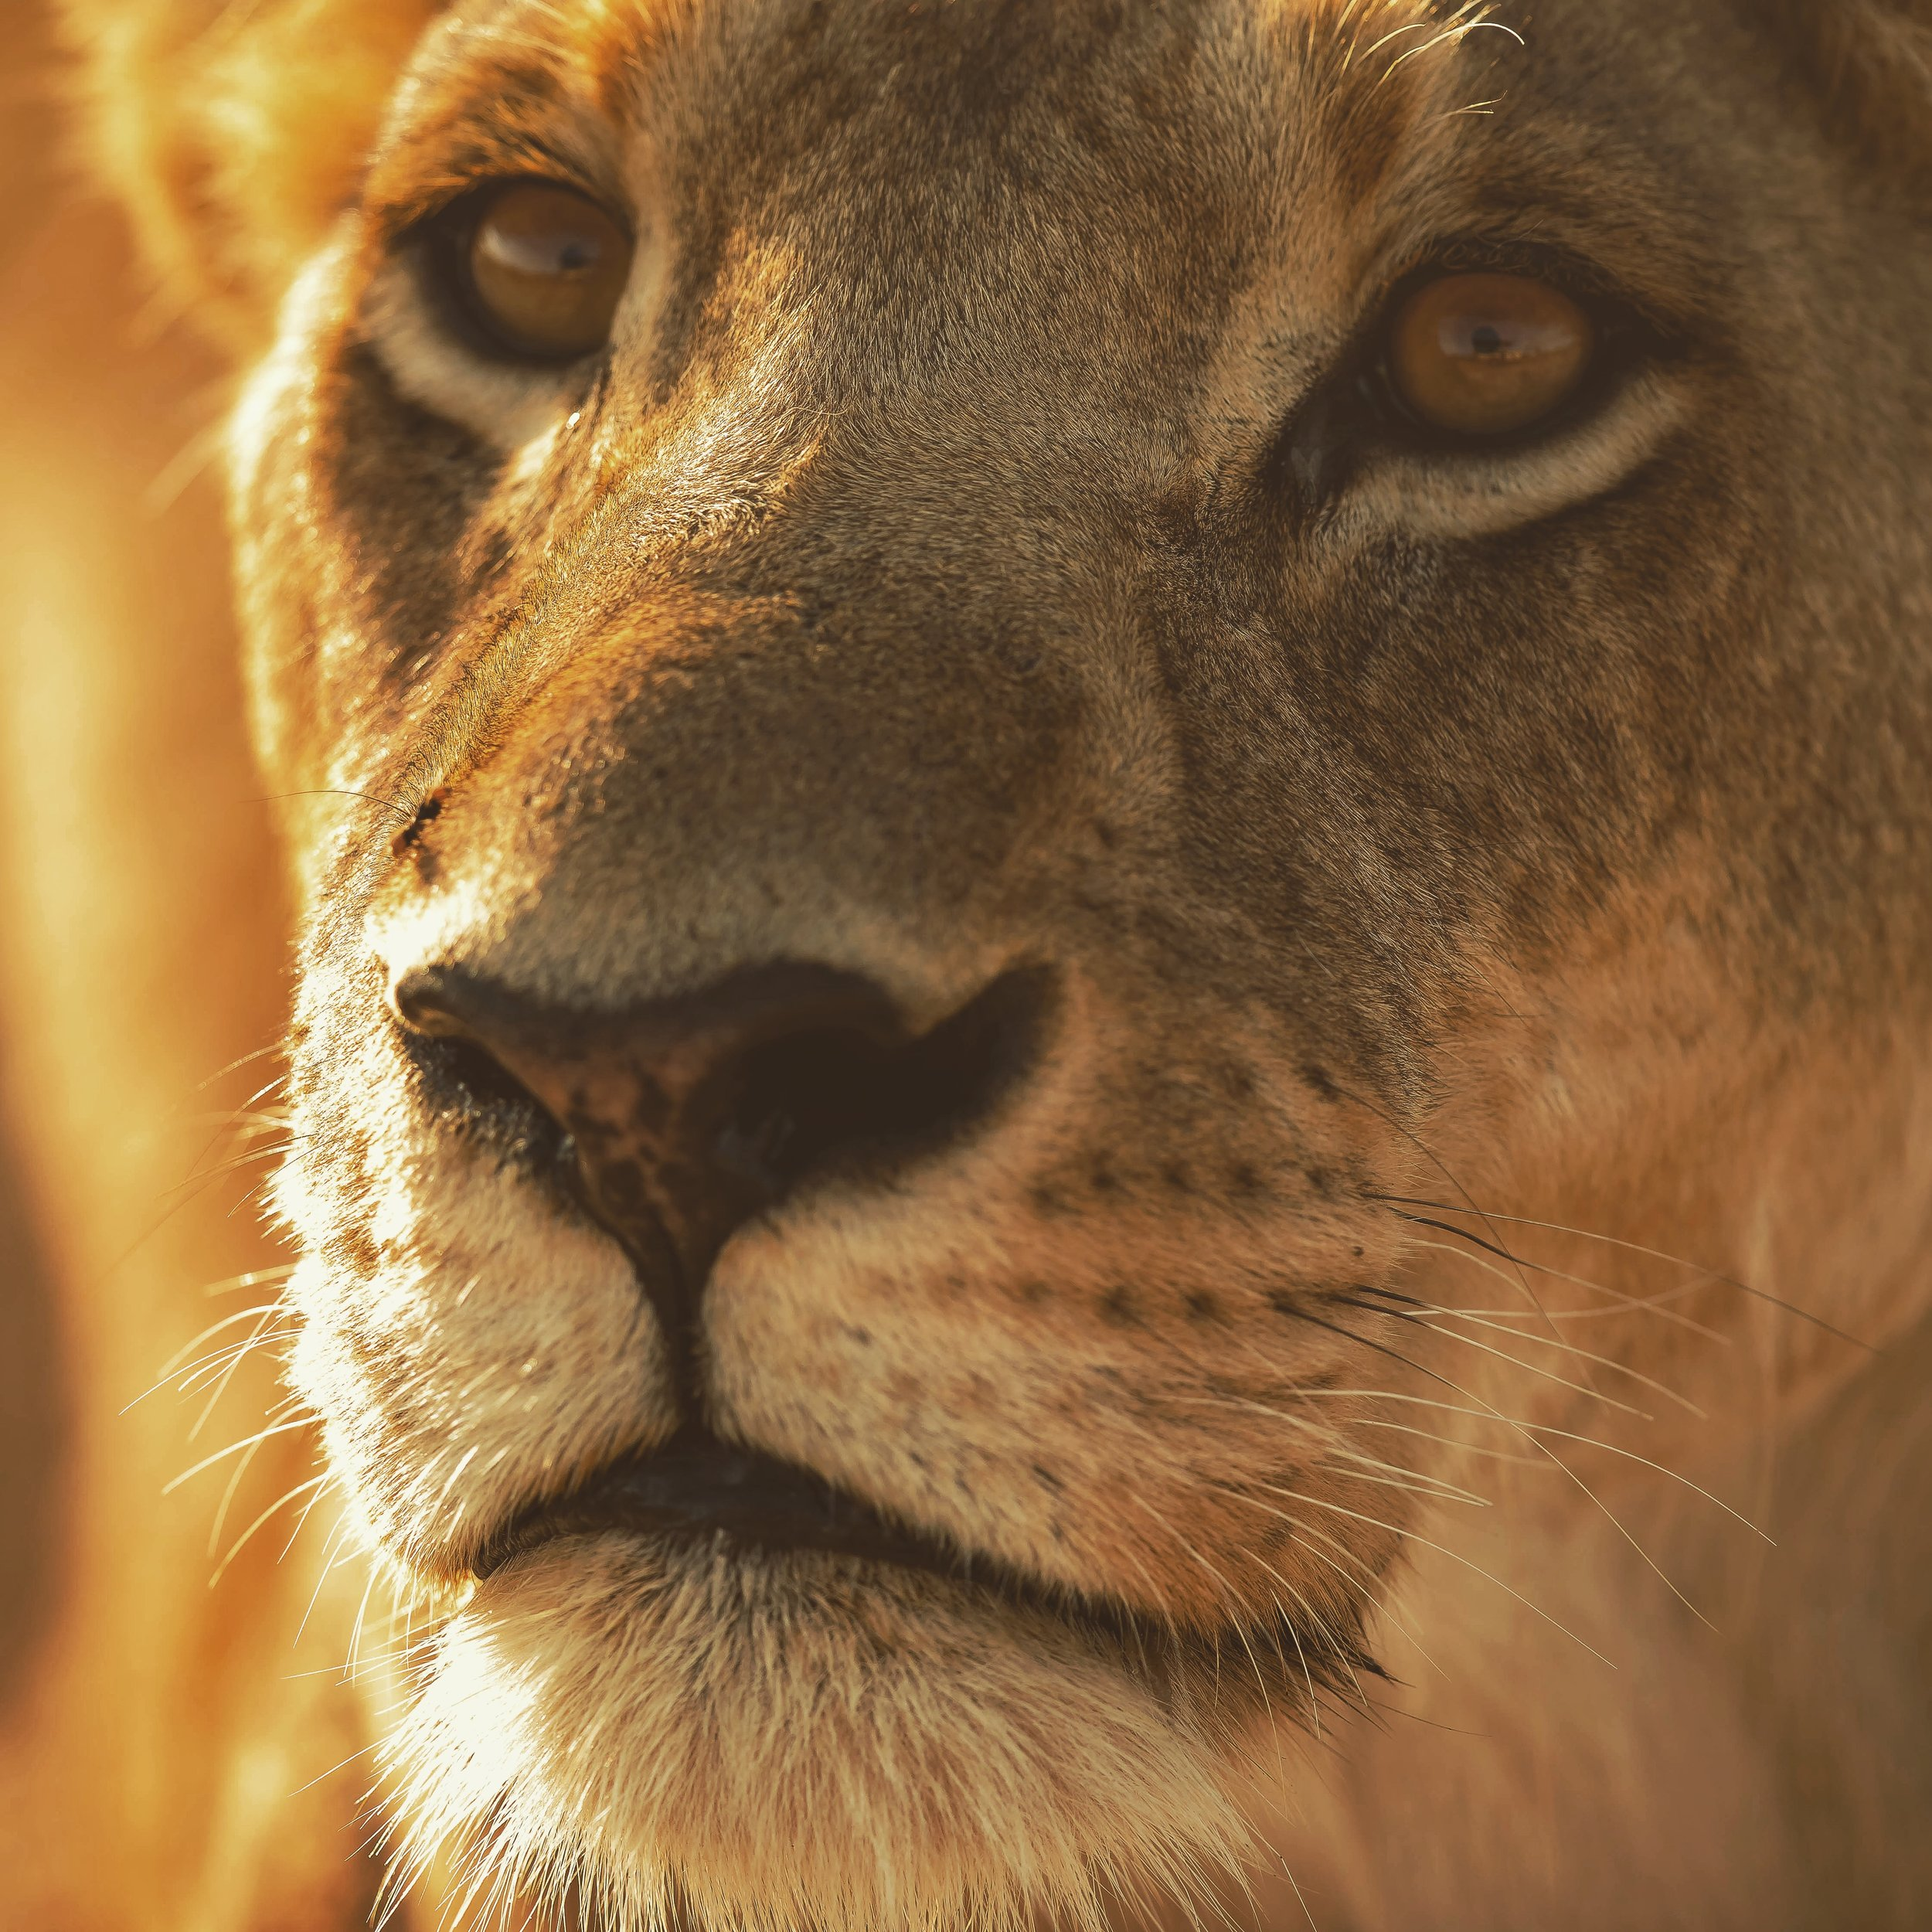 An intent stare of a lioness in the Moremi Game Reserve, Botswana